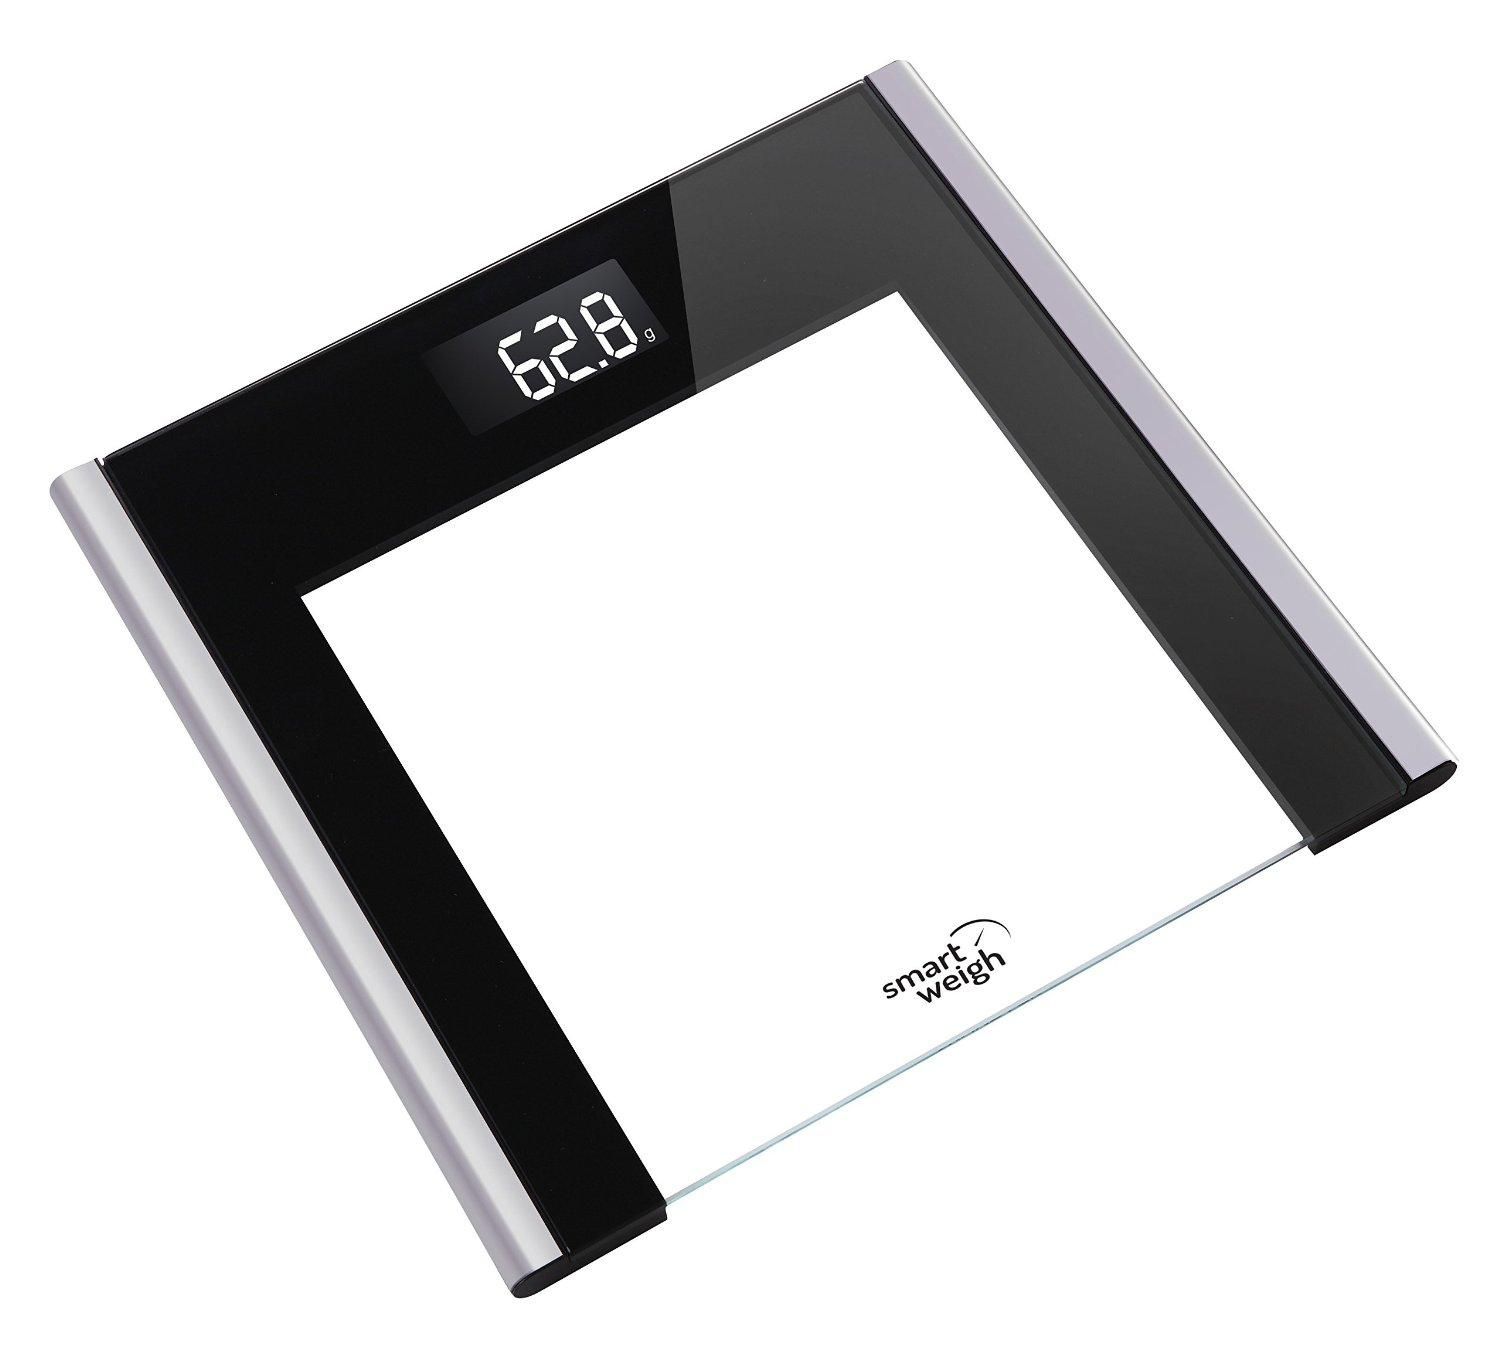 $14.9 Smart Weigh Precision Ultra Slim Digital Bathroom Scale with Instant Step-on technology, Tempered Glass with Black Accents